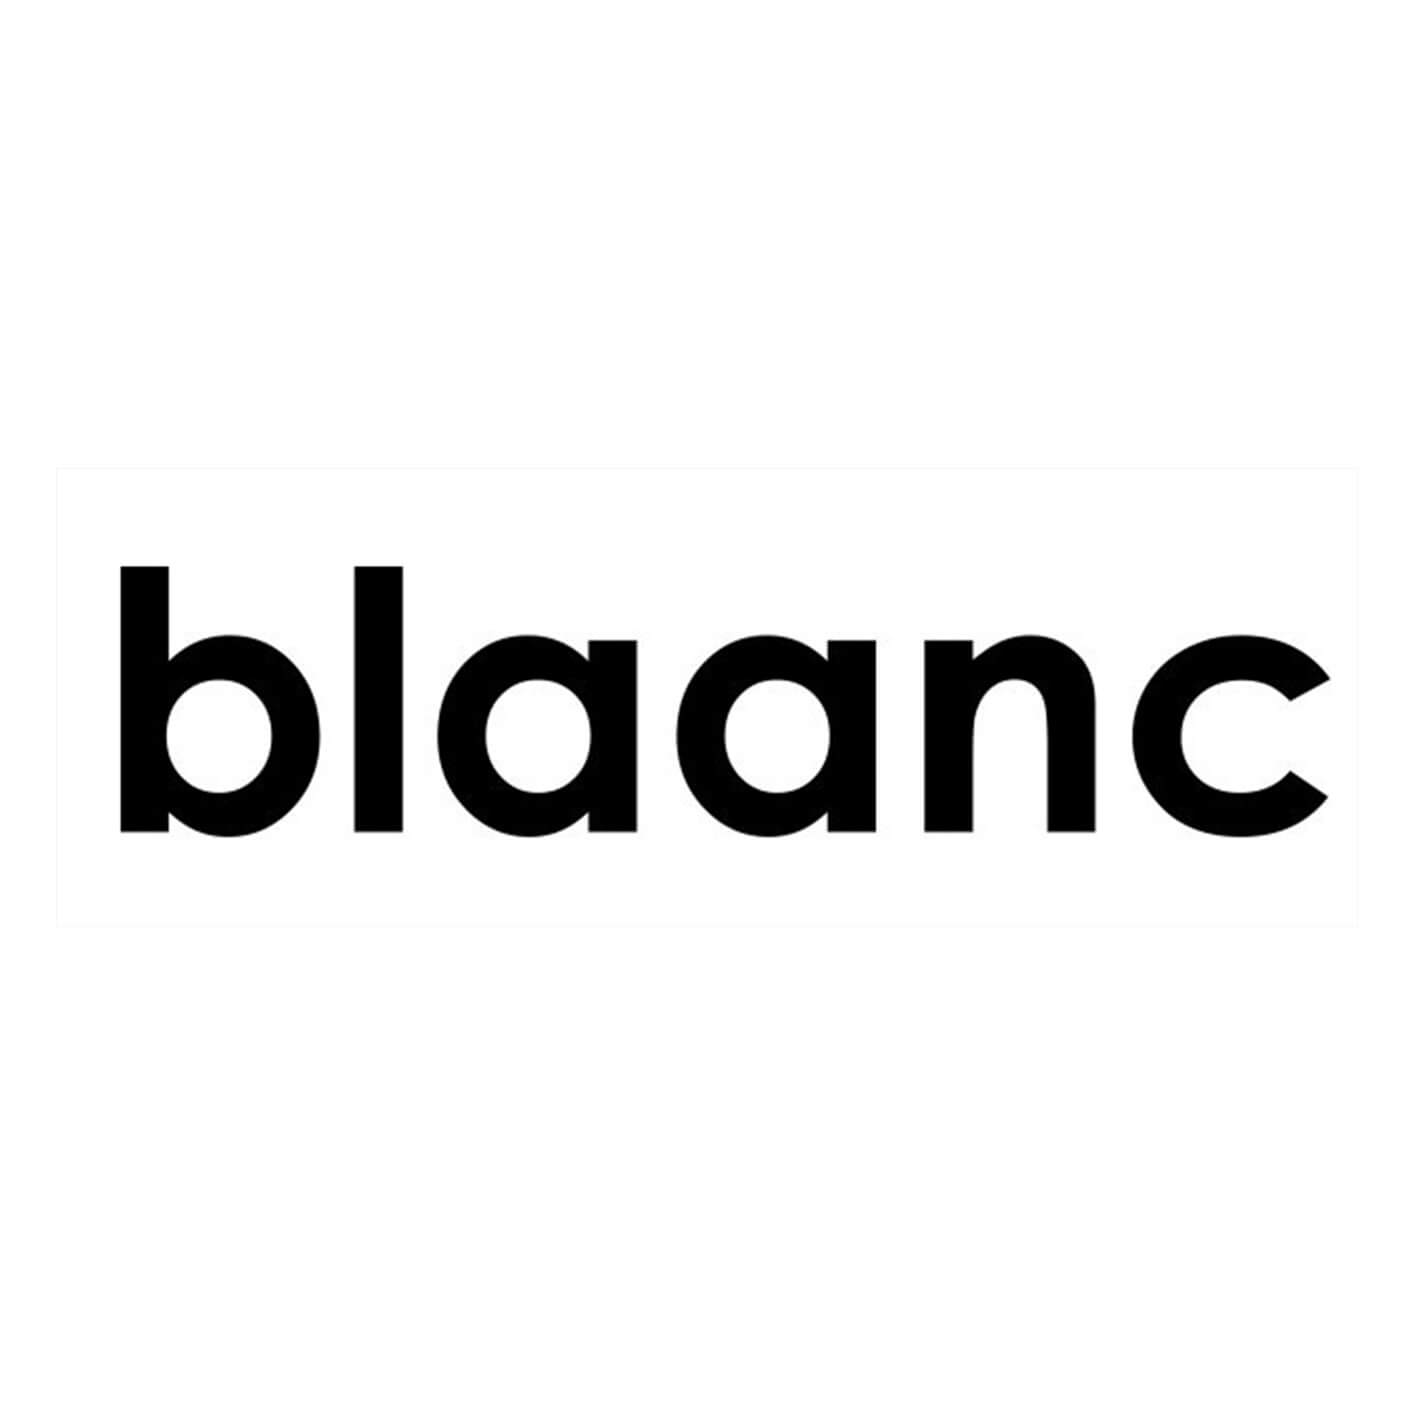 Blaanc borderless architecture